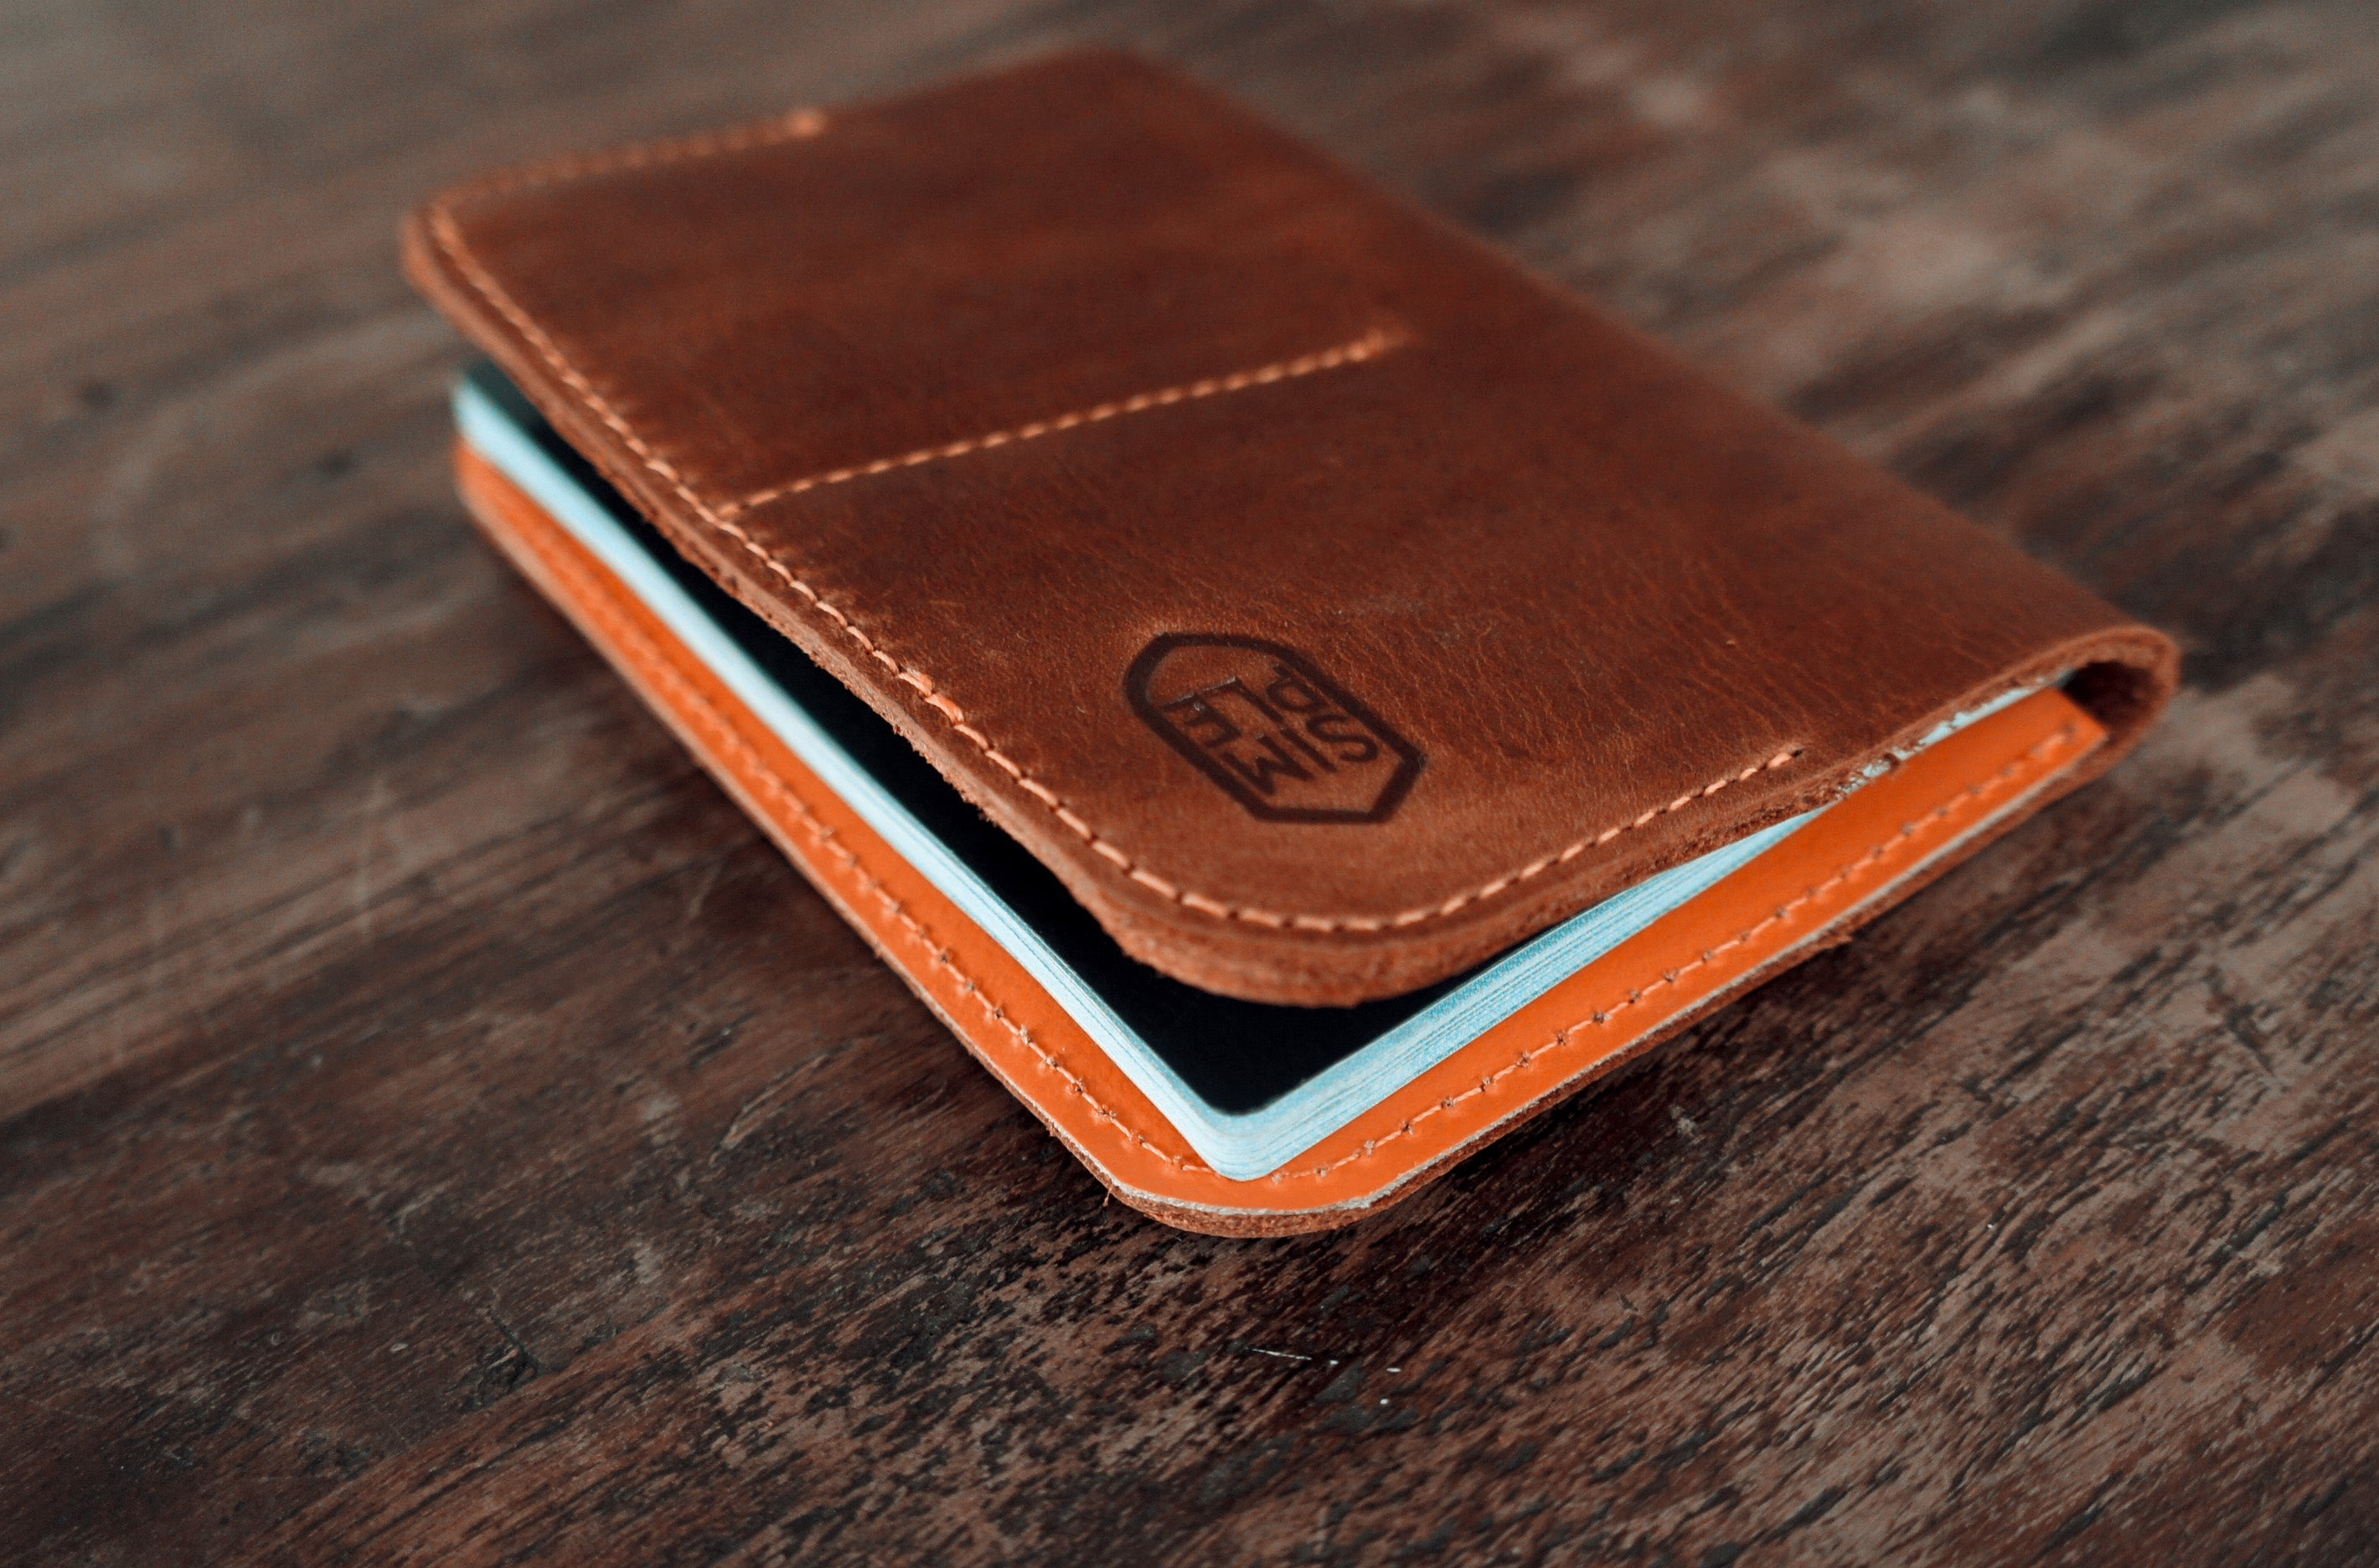 Handmade brown leather passport wallet, with orange inside